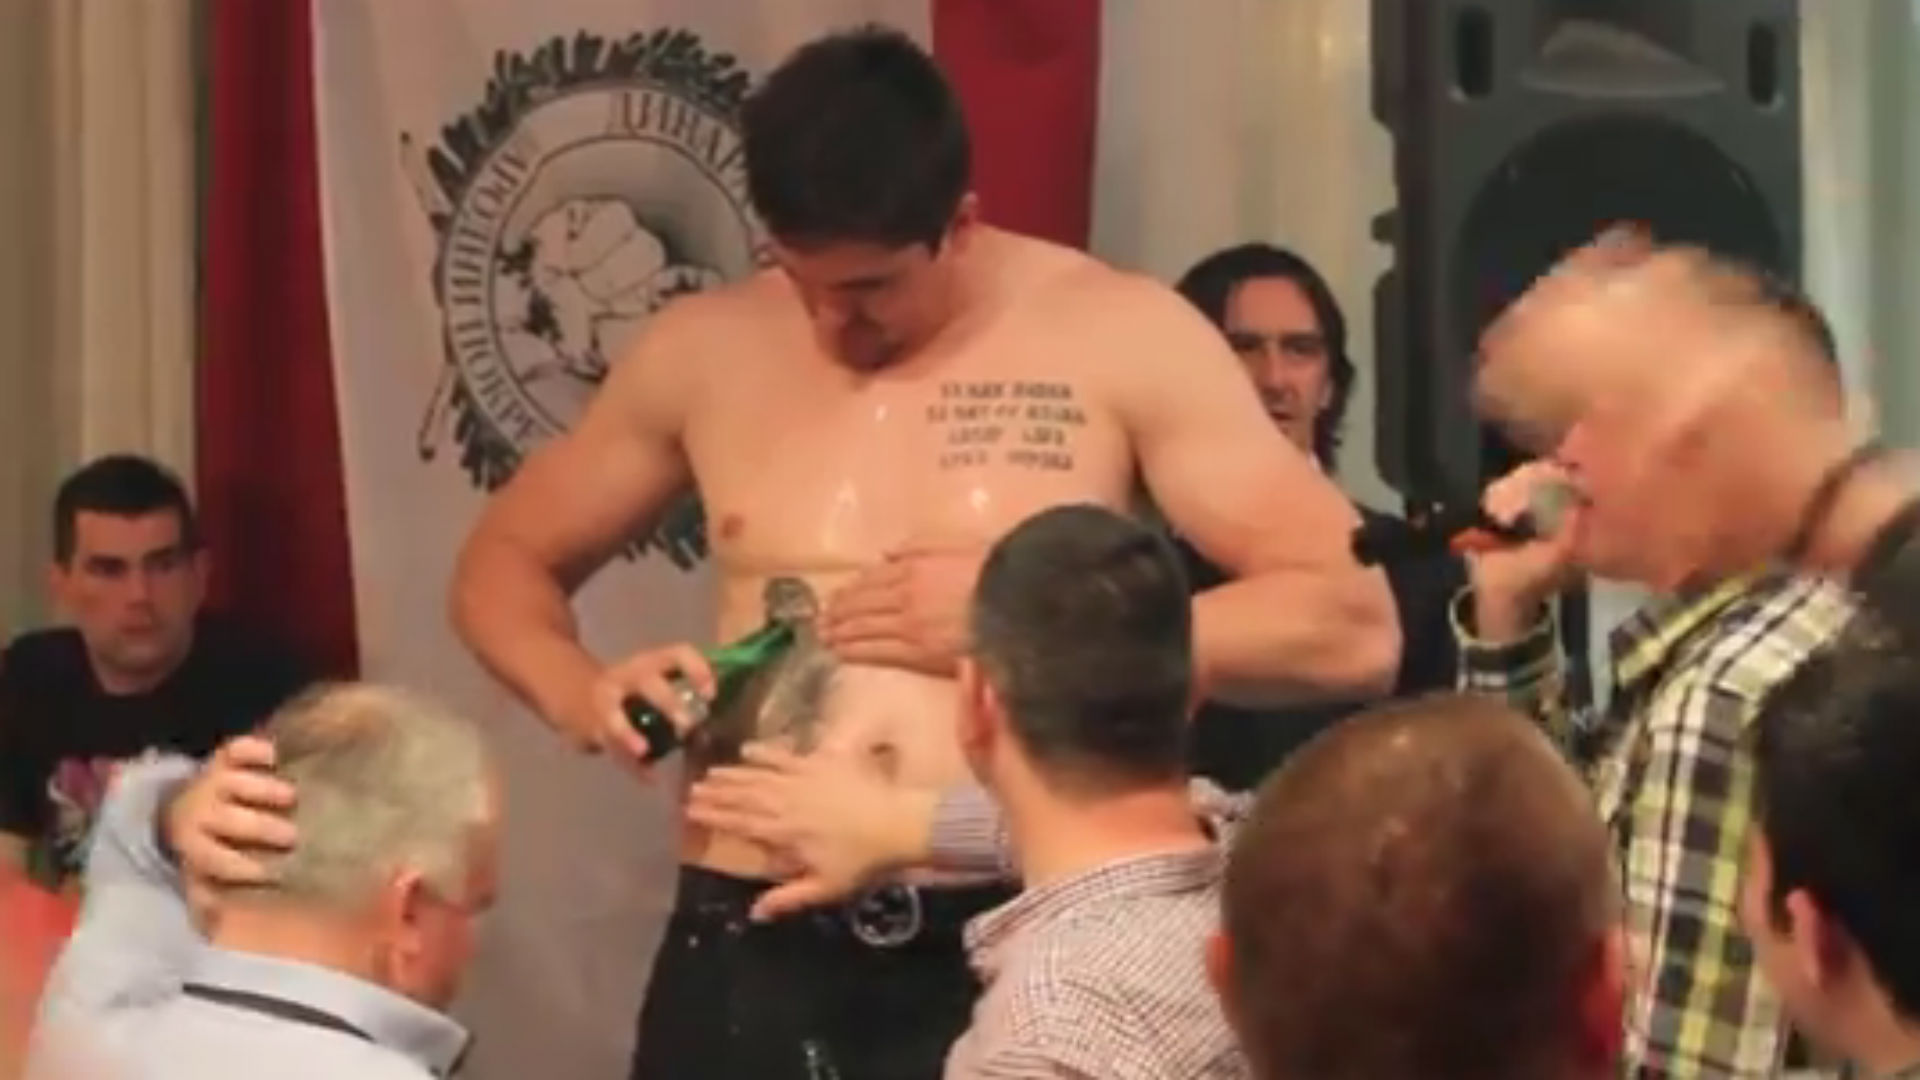 Darko Milicic acts like drunken fool, sings karaoke shirtless